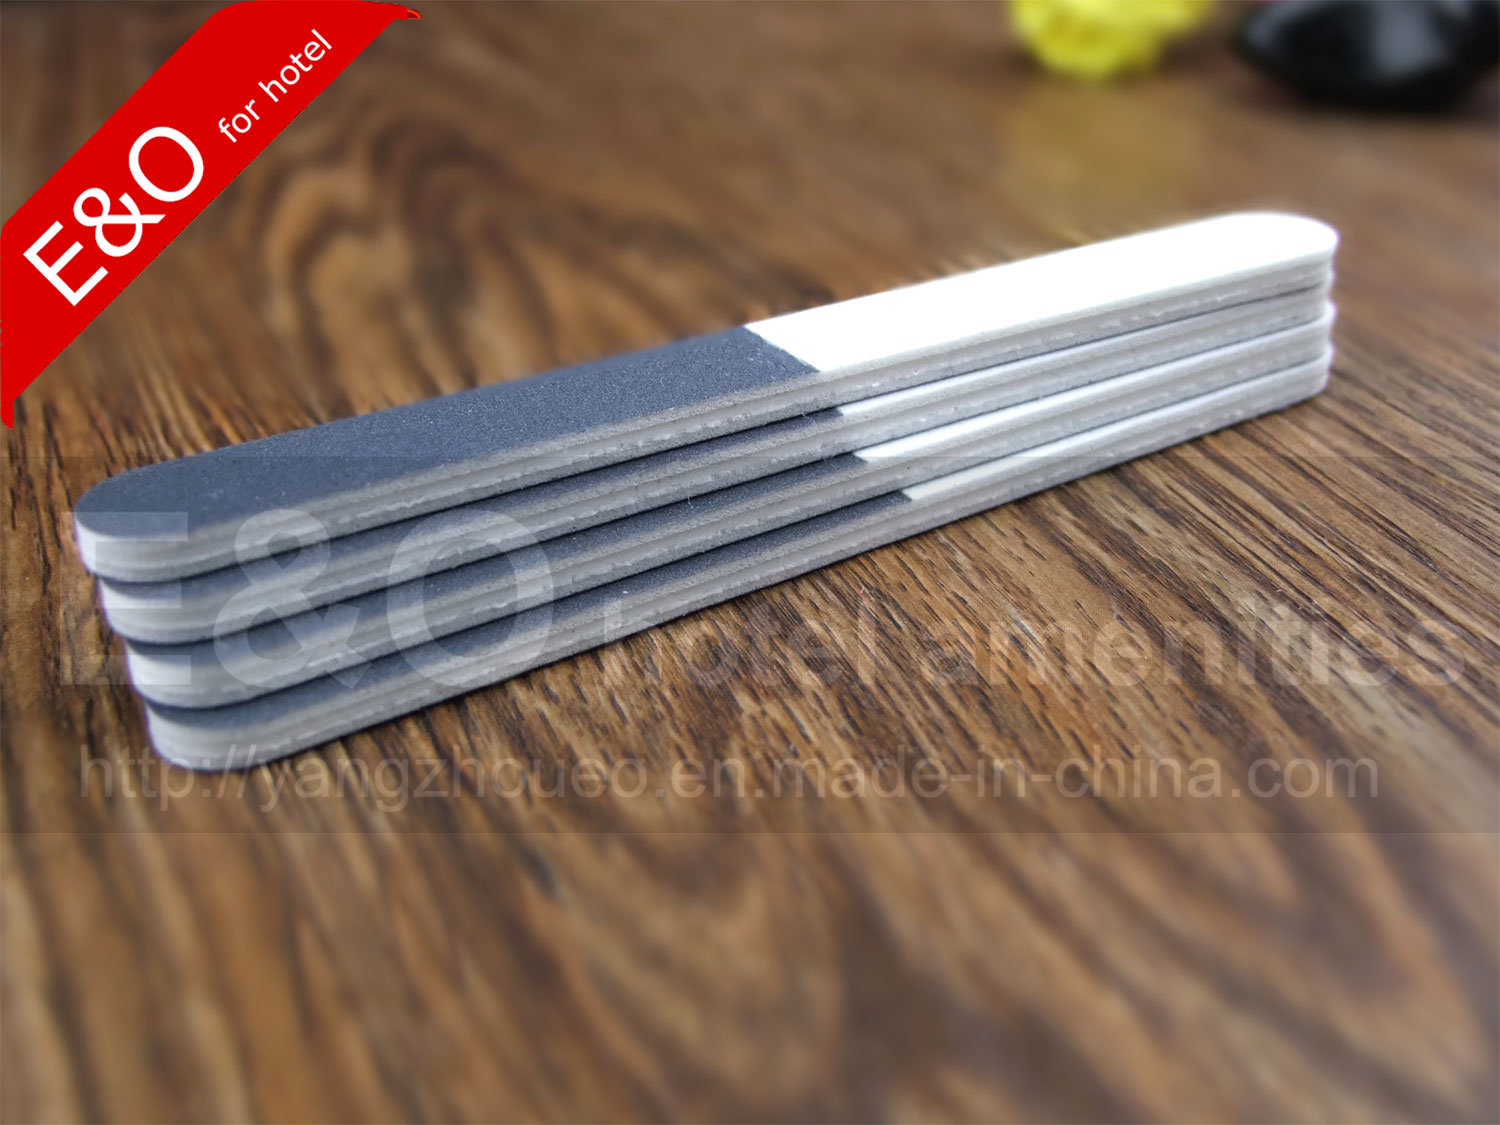 China Hotel Amenities Long Size Emery Board Nail File Photos ...